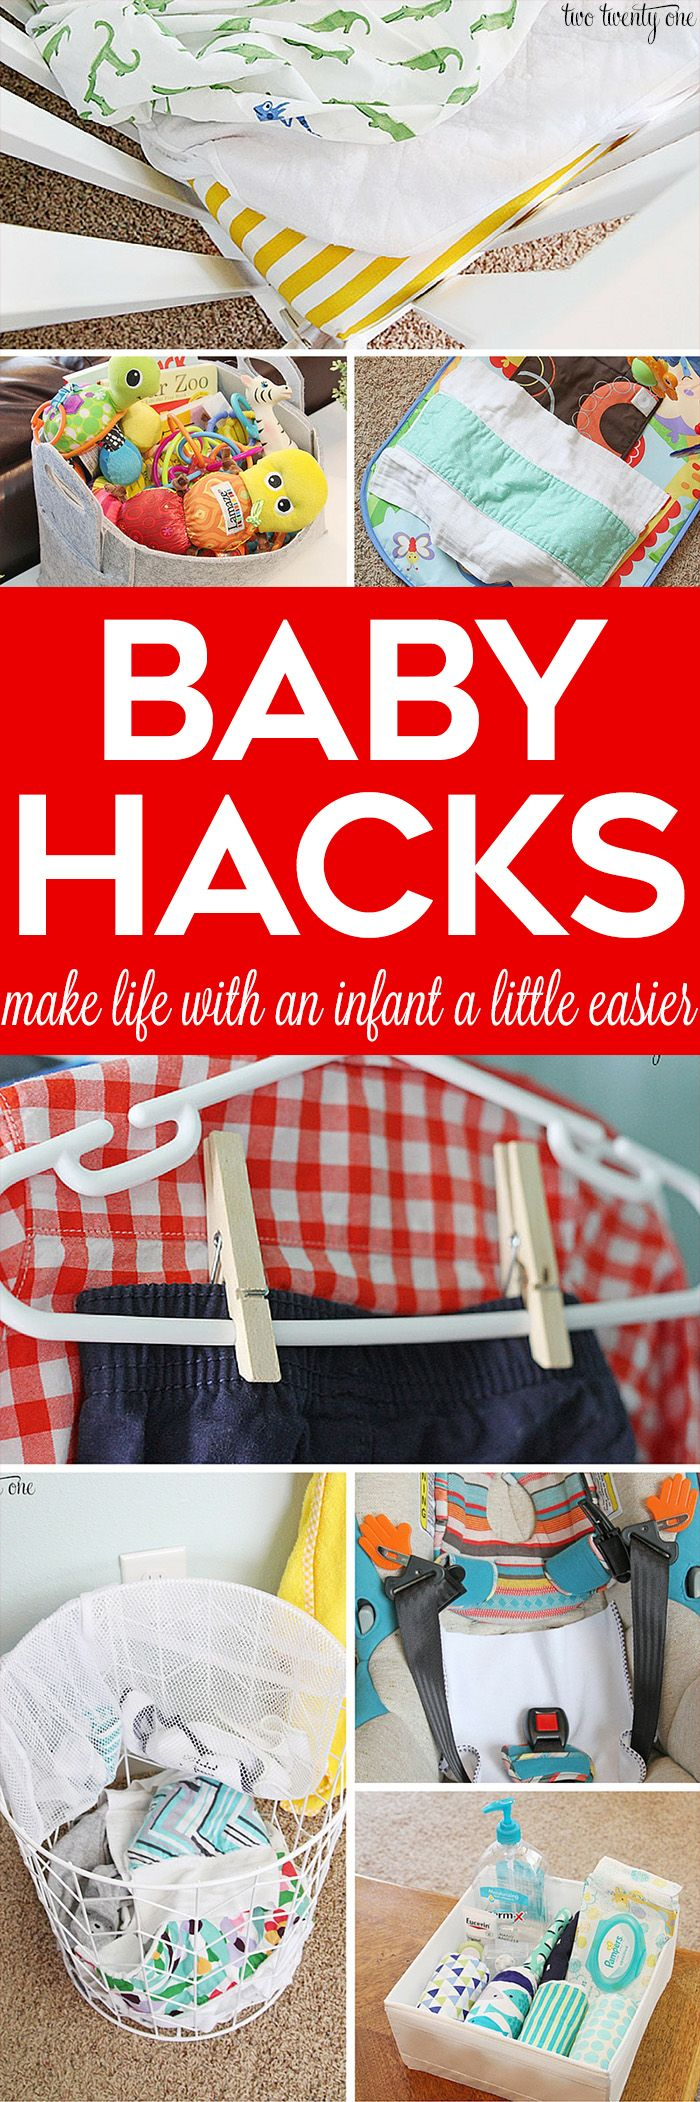 Baby hacks! Great tips and tricks to make life with a baby a little easier! A popular pin for baby and new parents! http://www.twotwentyone.net/baby-hacks/